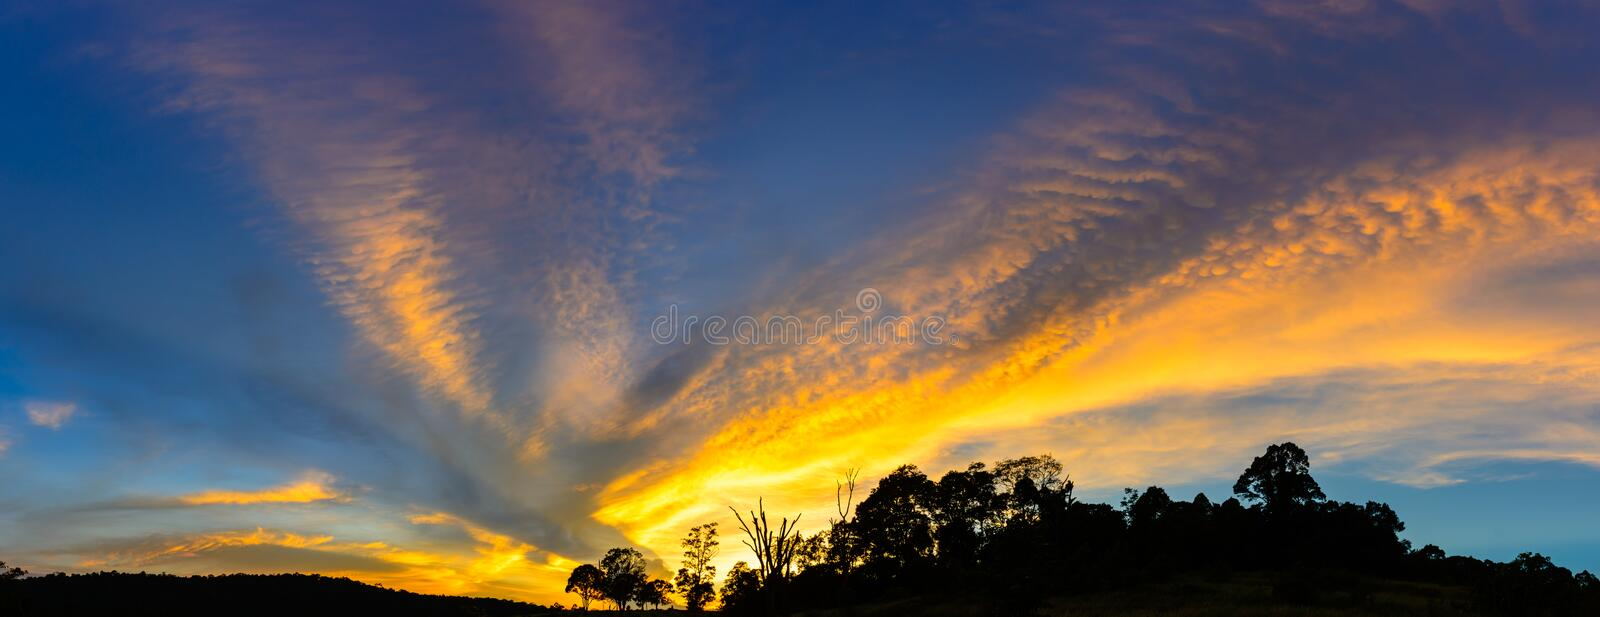 Vivid stormy sky at sunset in Thailand royalty free stock photography